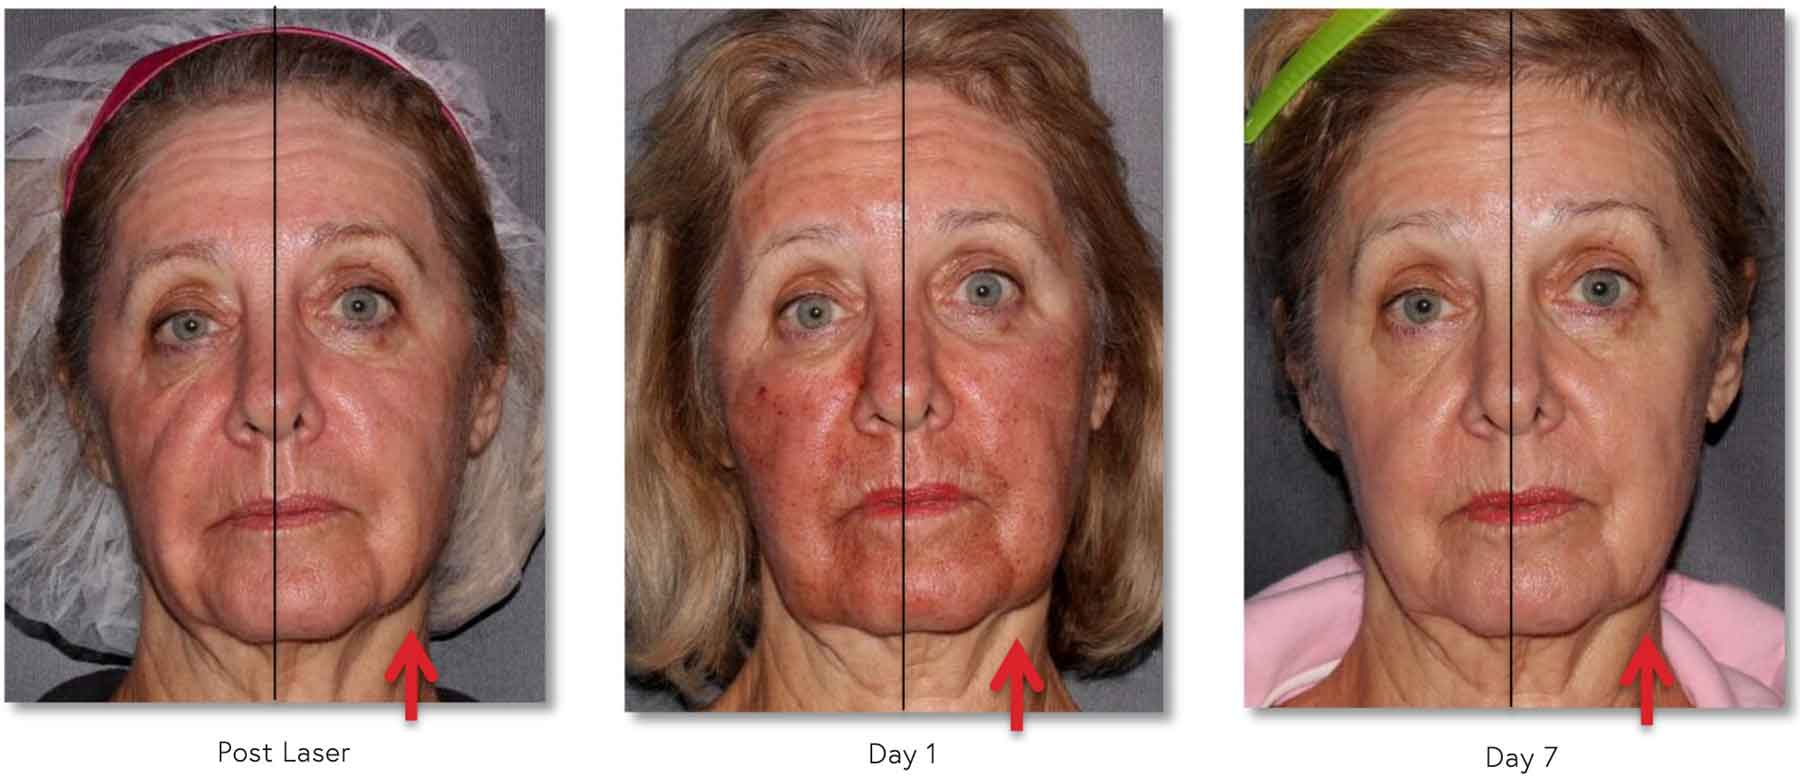 68yoF with decreased Erythema (redness) on side treated with CALECIM® Serum